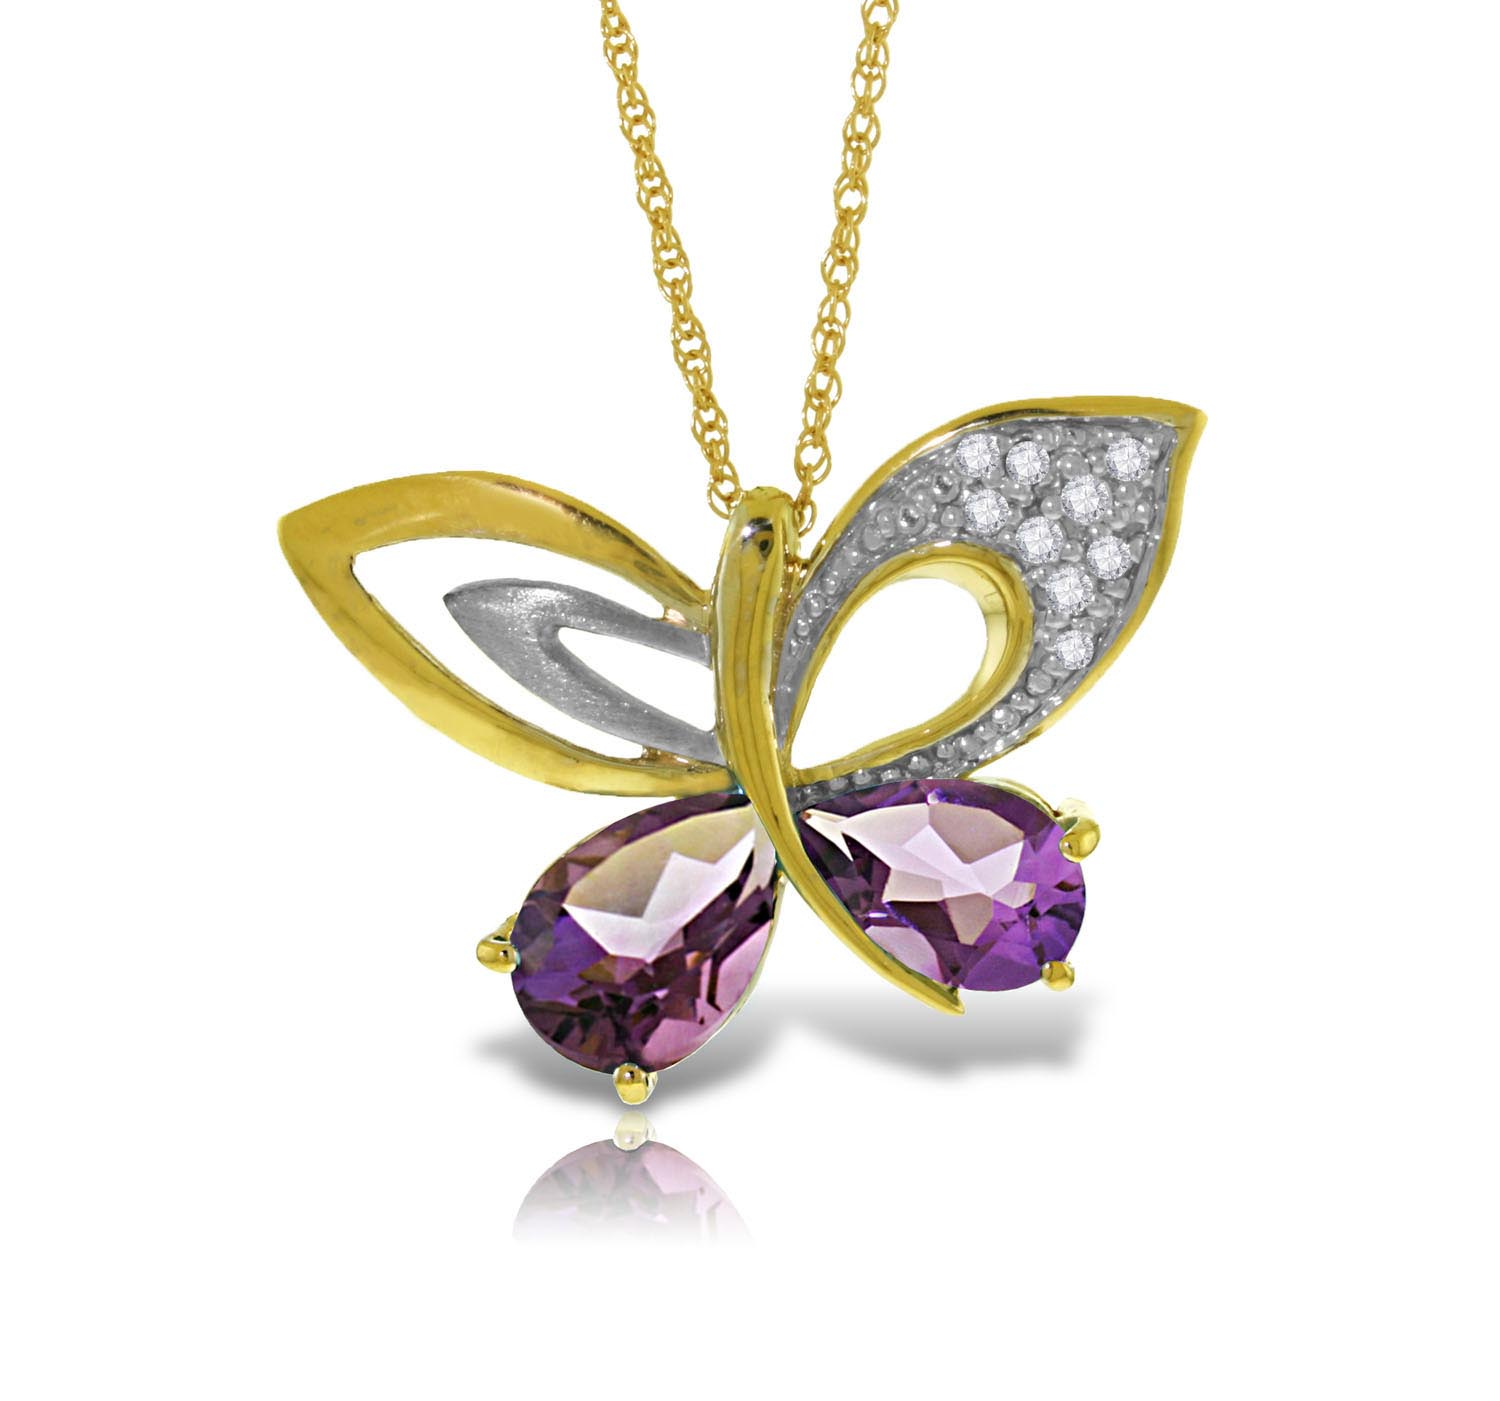 Stockists of Amethyst and Diamond Butterfly Pendant Necklace 3.5ctw in 9ct Gold